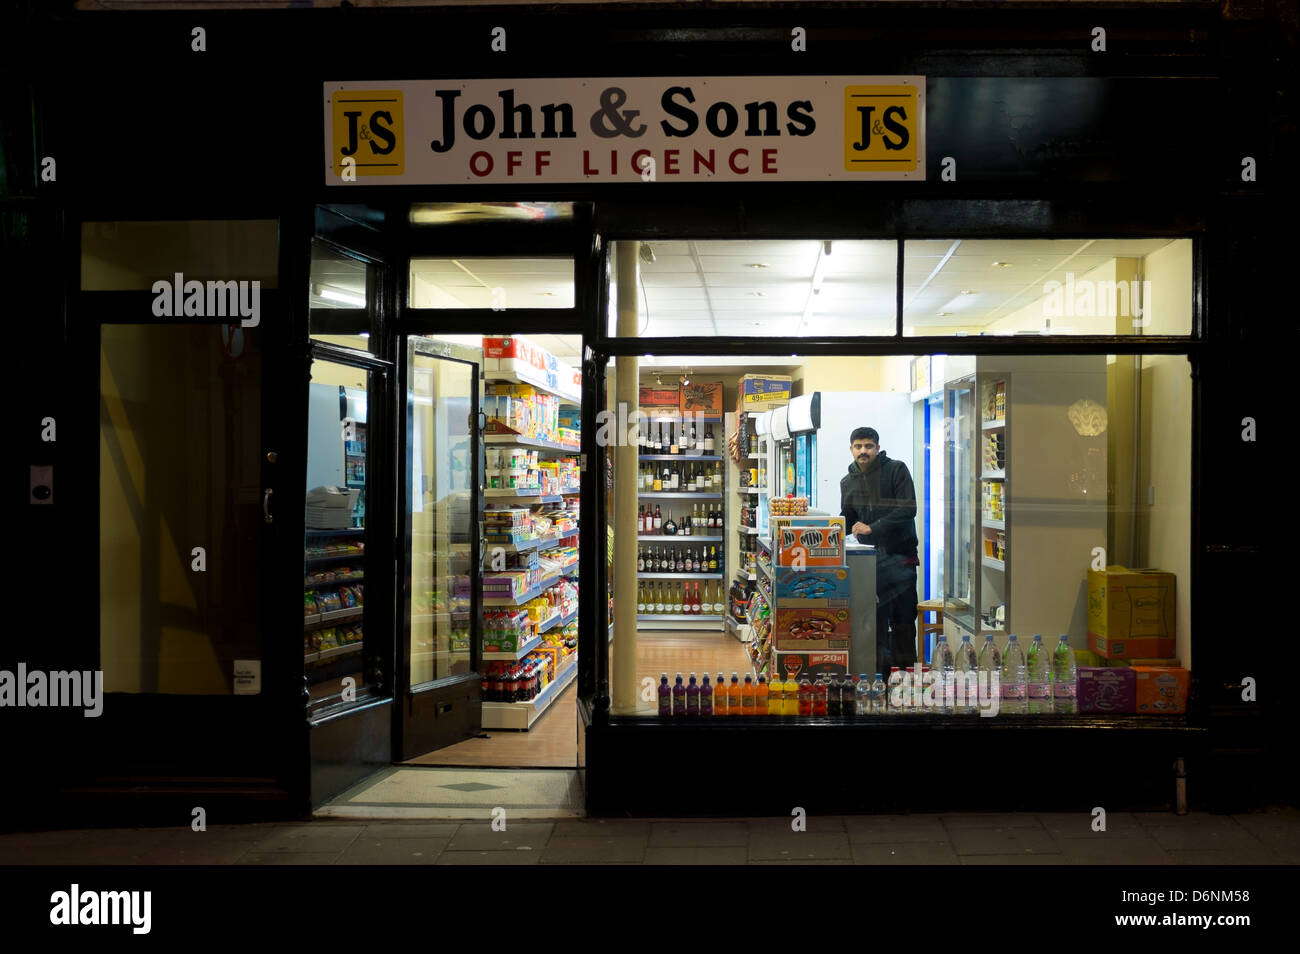 John and Sons, Off licence - a small independent retail convenience shop, exterior, night,  Aberystwyth Wales UK - Stock Image